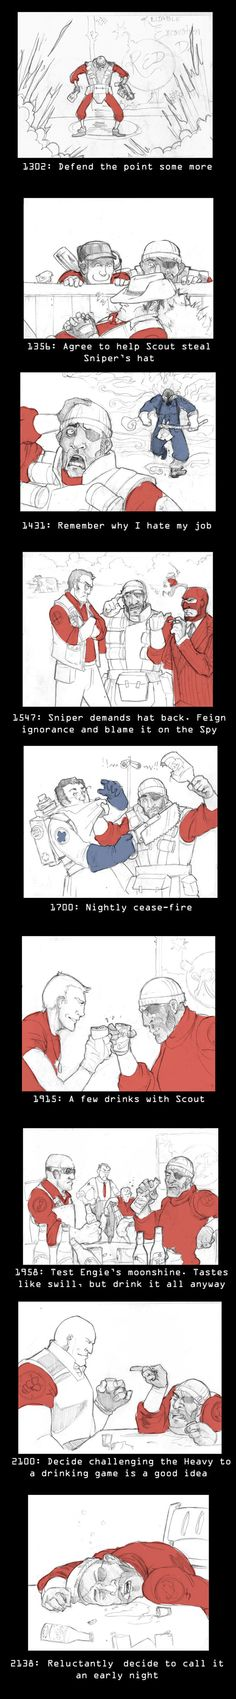 TF2: A Day in the Life -- 2 by ~alciha on deviantART